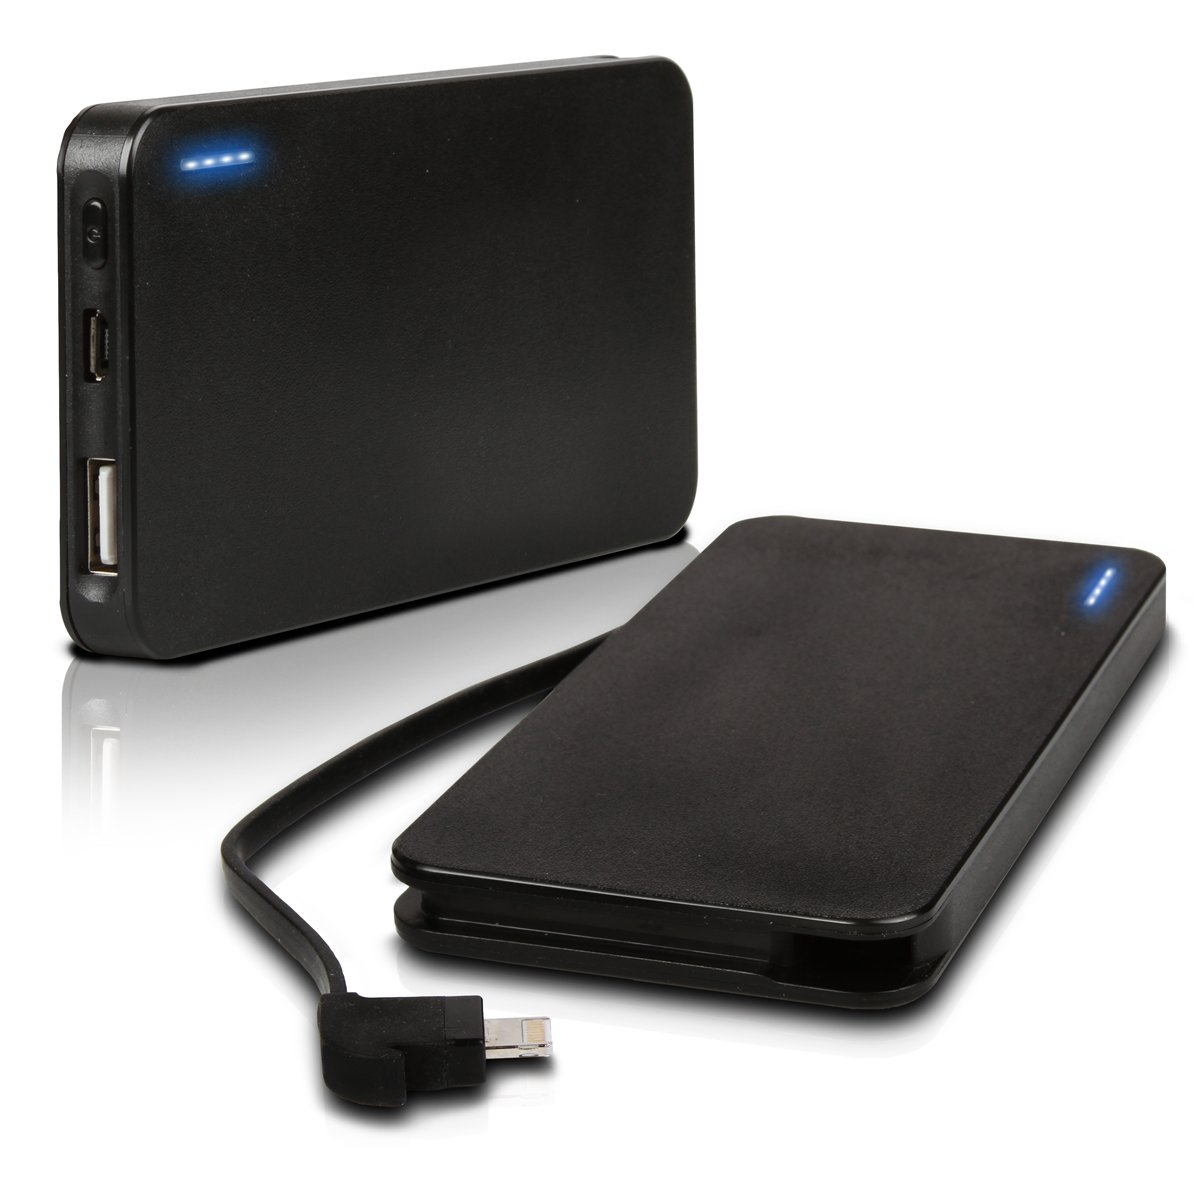 Photive iPhone 5 Rechargeable 3000 Mah Portable Battery Charger with Built in Lightning Cable. $19.95